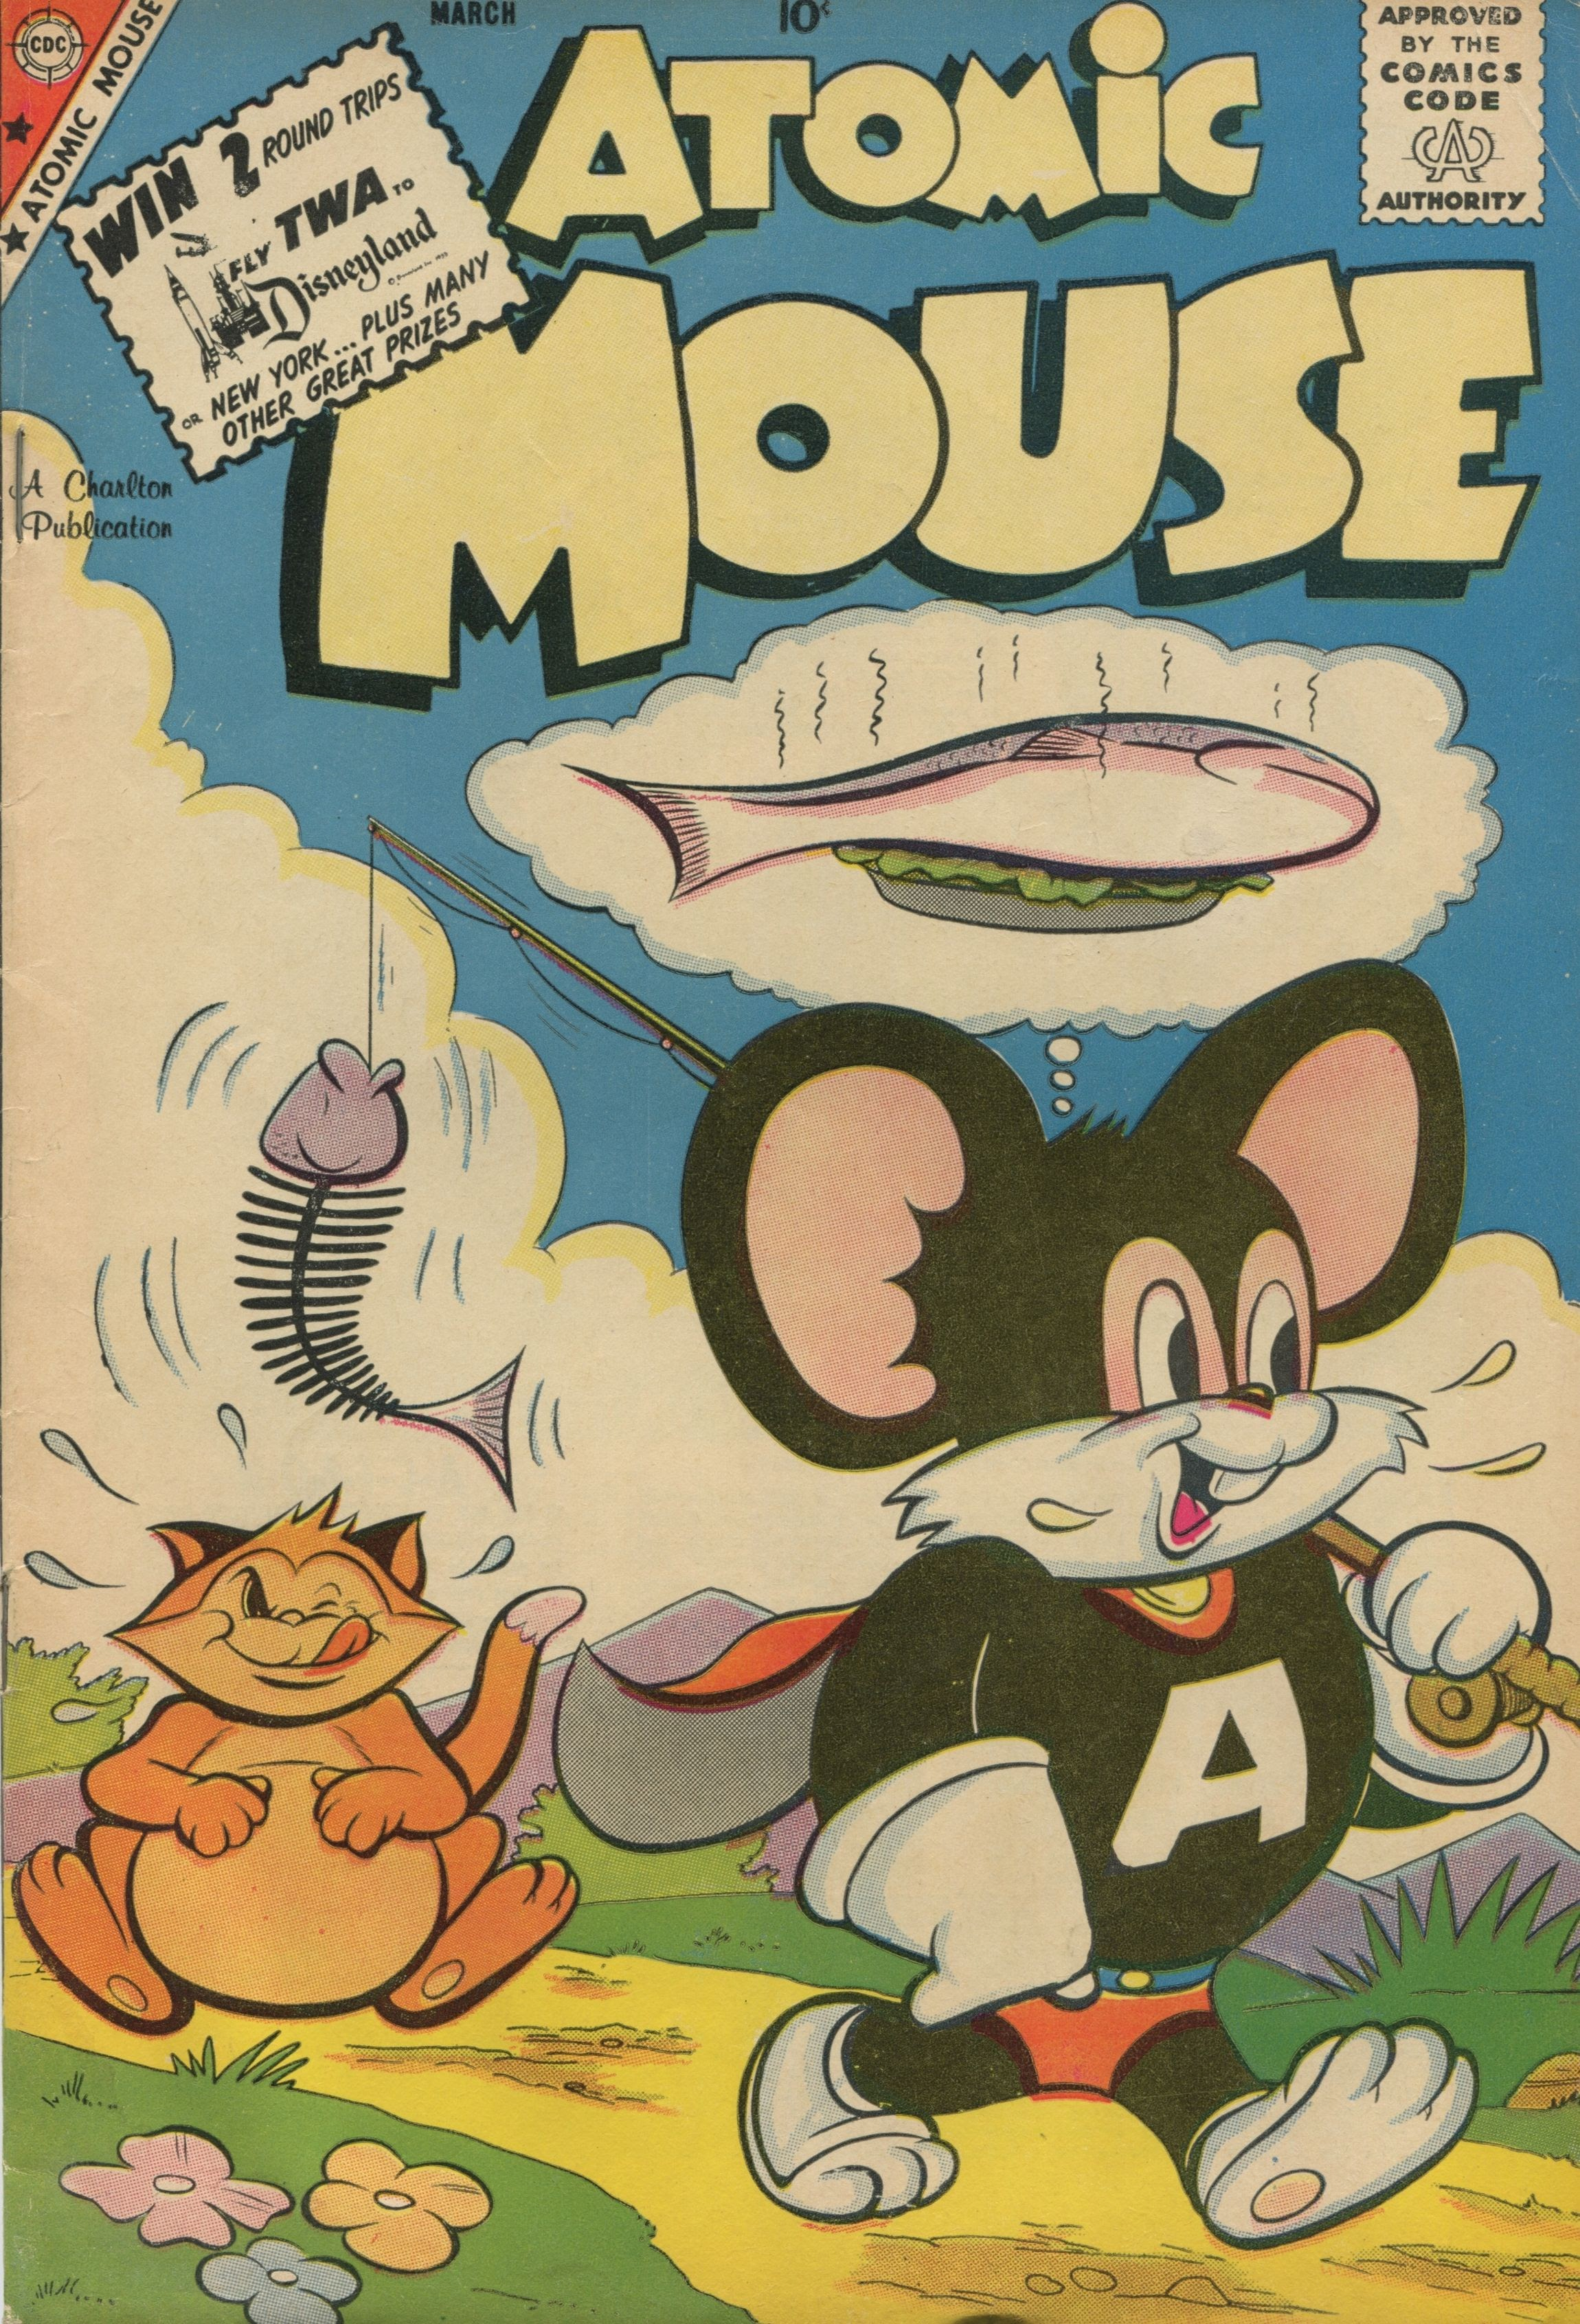 Atomic Mouse 35 Page 1